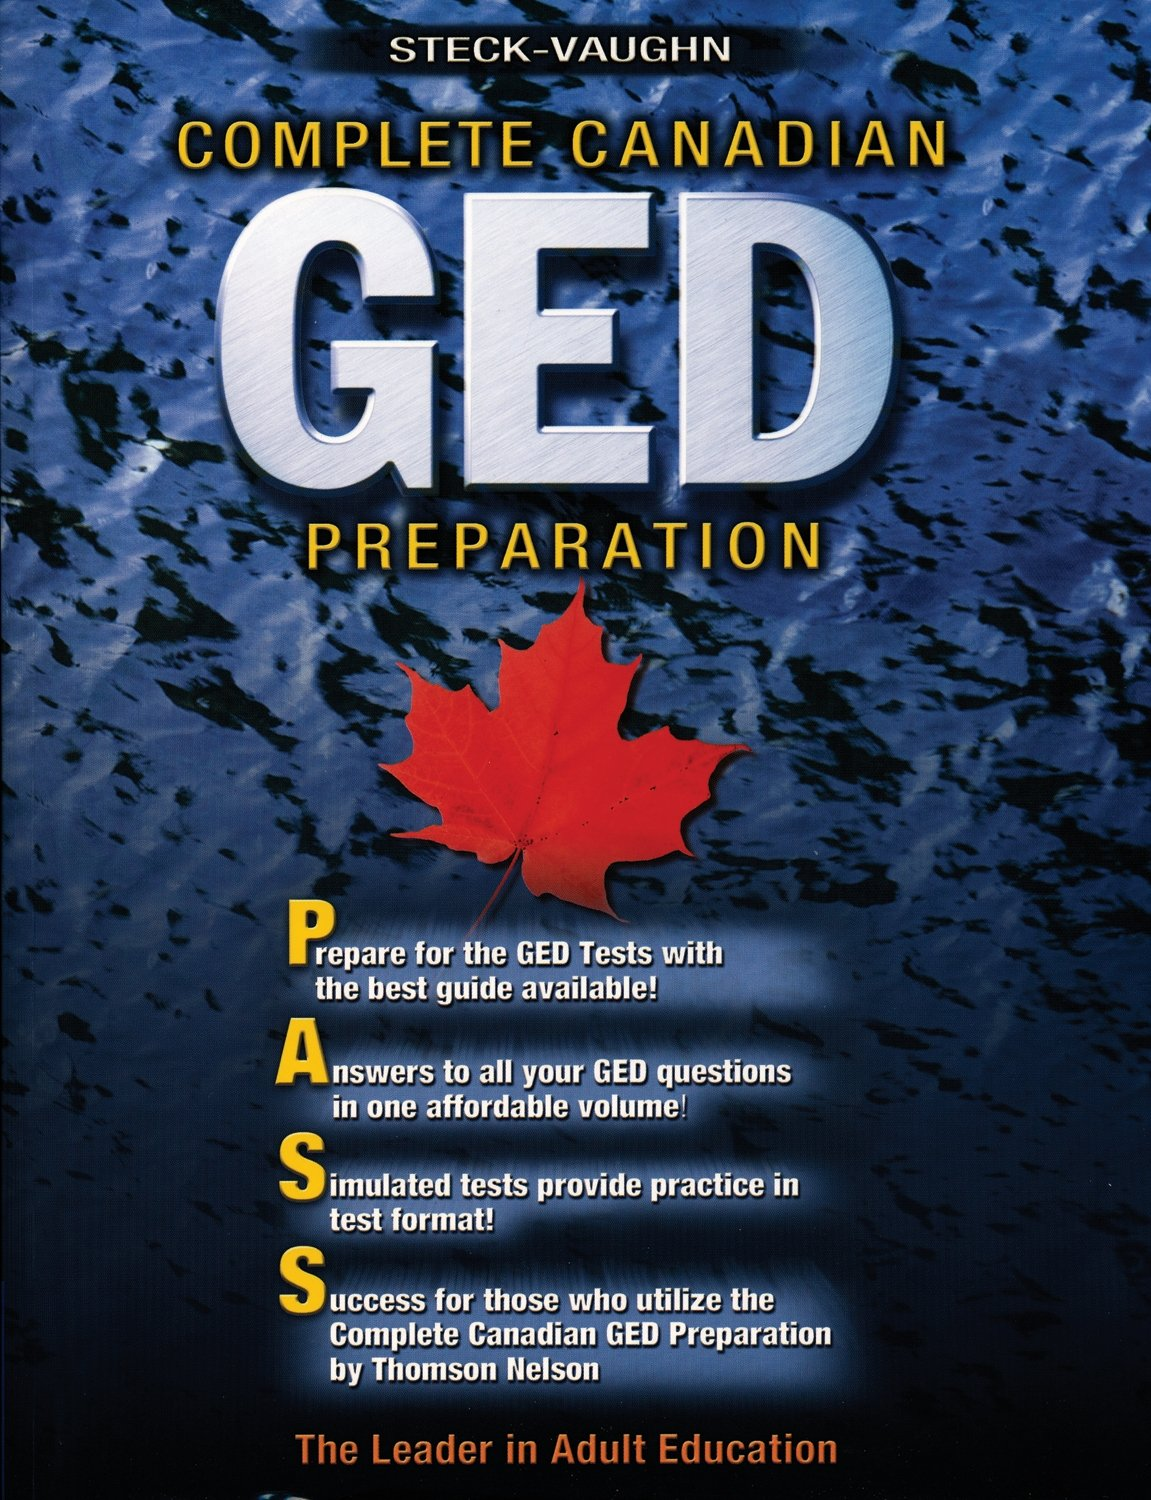 Complete Canadian GED Preparation Handbook: Adapt for SV: Steck Vaughn  Steck Vaughn: 9780774716314: Books - Amazon.ca